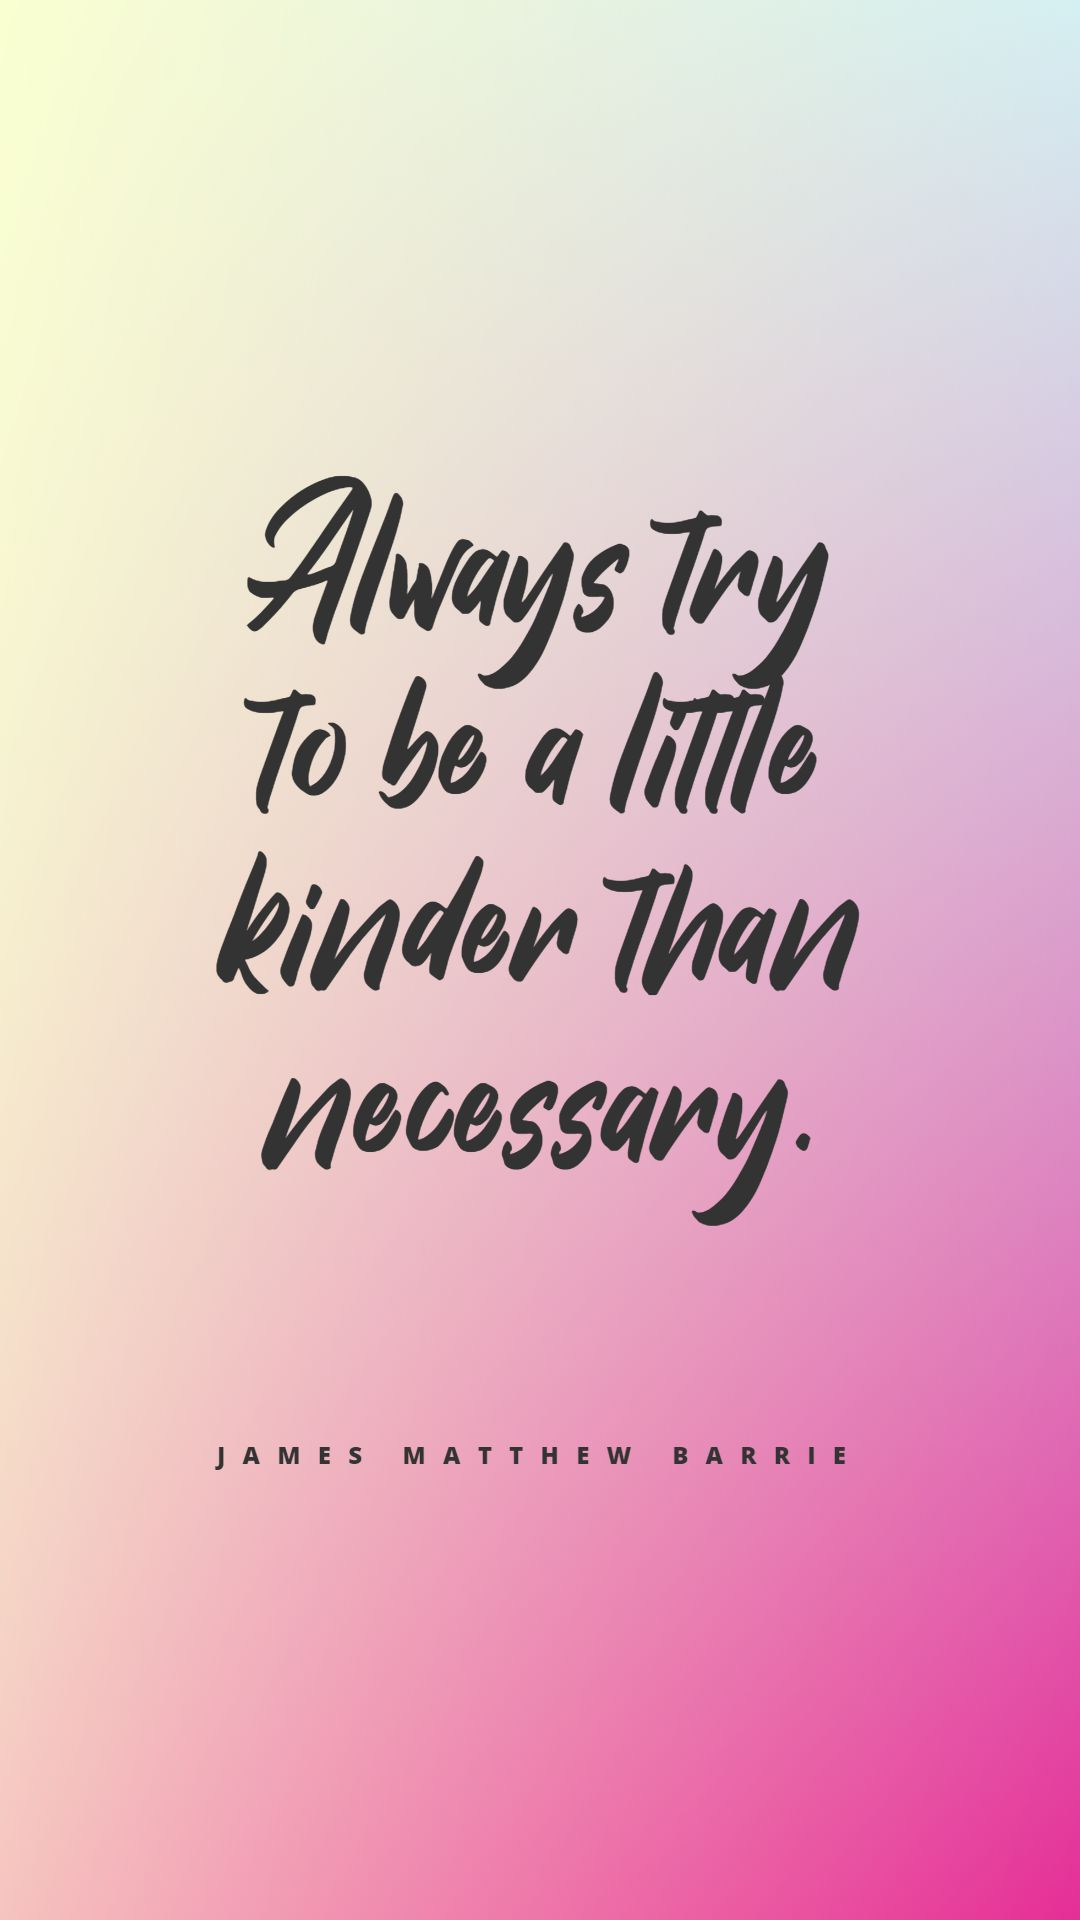 Quotes image of Always try to be a little kinder than necessary.